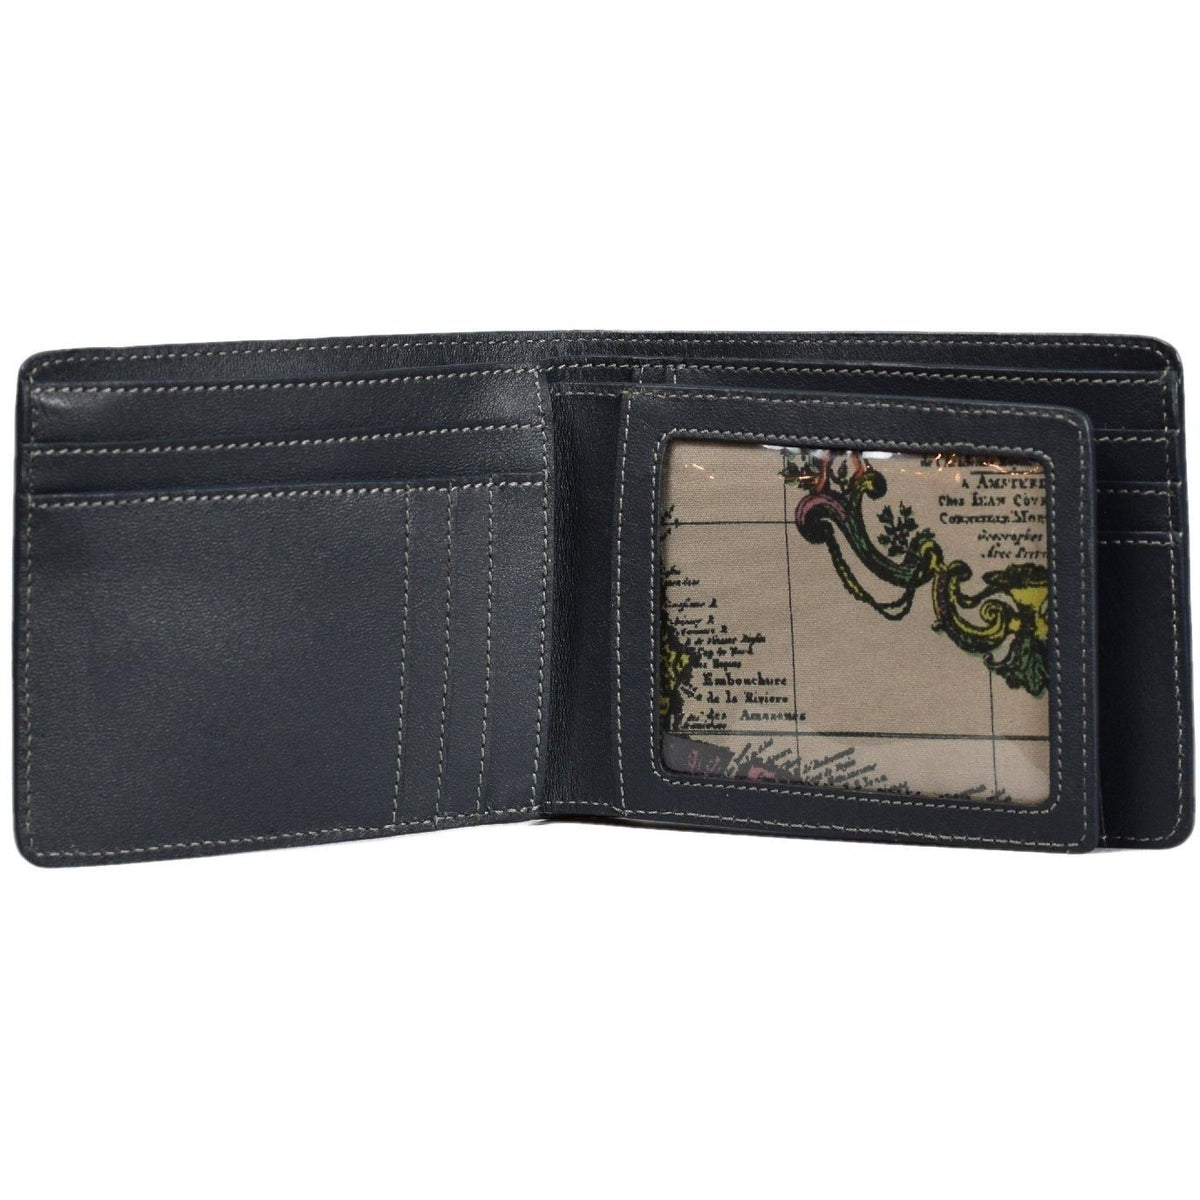 DuPont Wallet, Wallet | LAND Leather